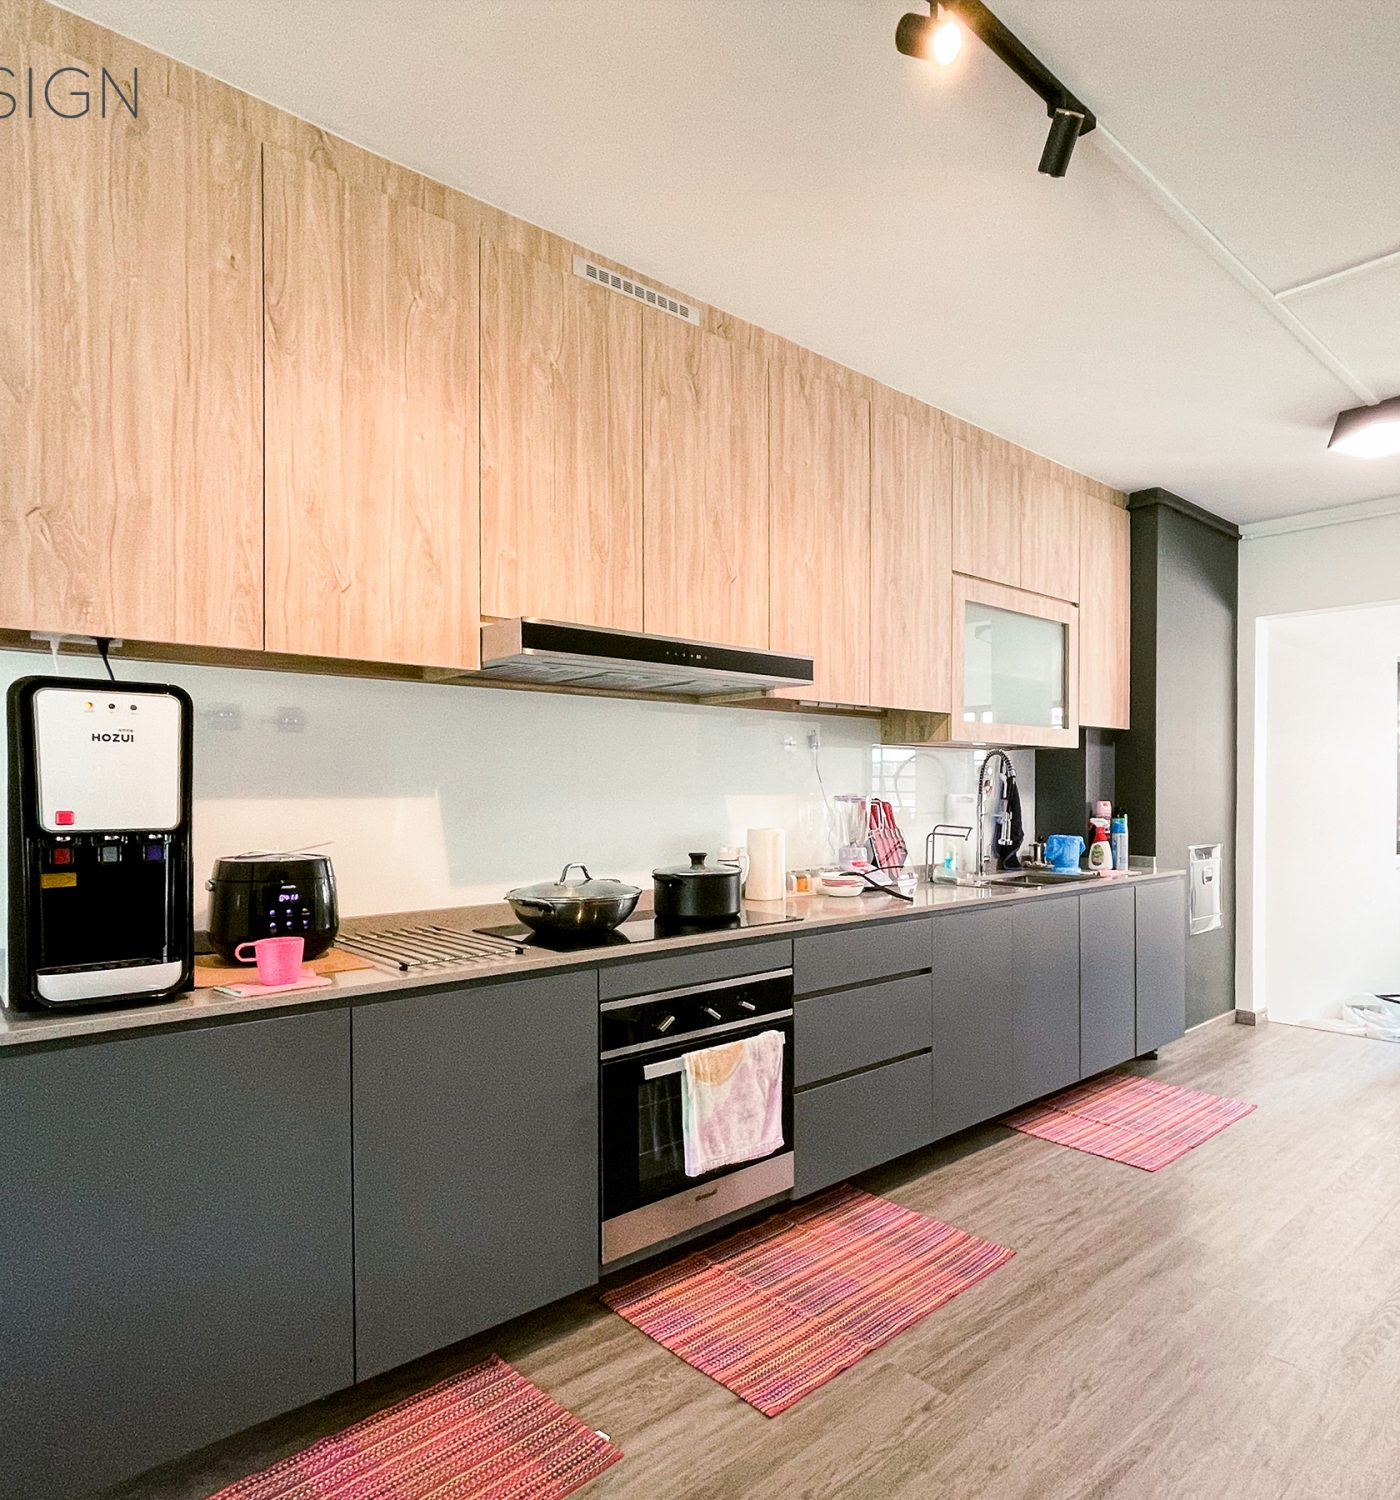 BY DESIGN - 159 Simei Road Kitchen